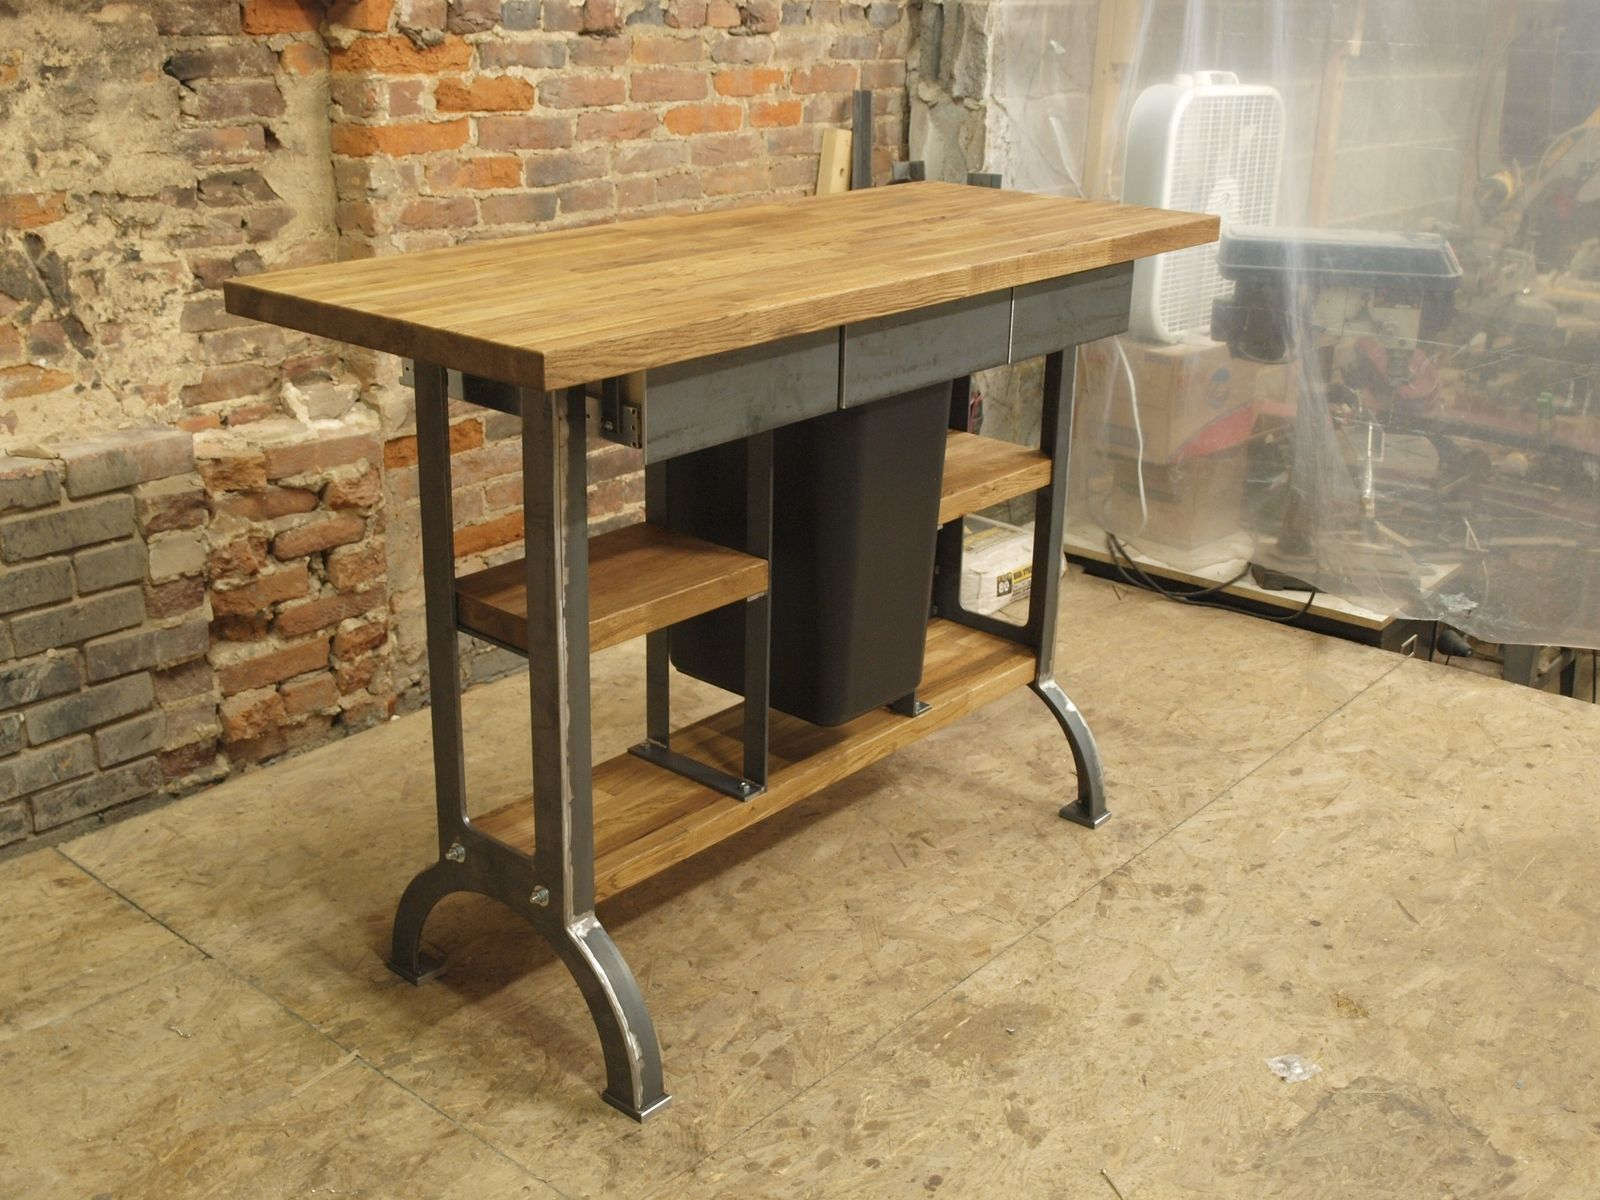 Modern industrial kitchen island console table